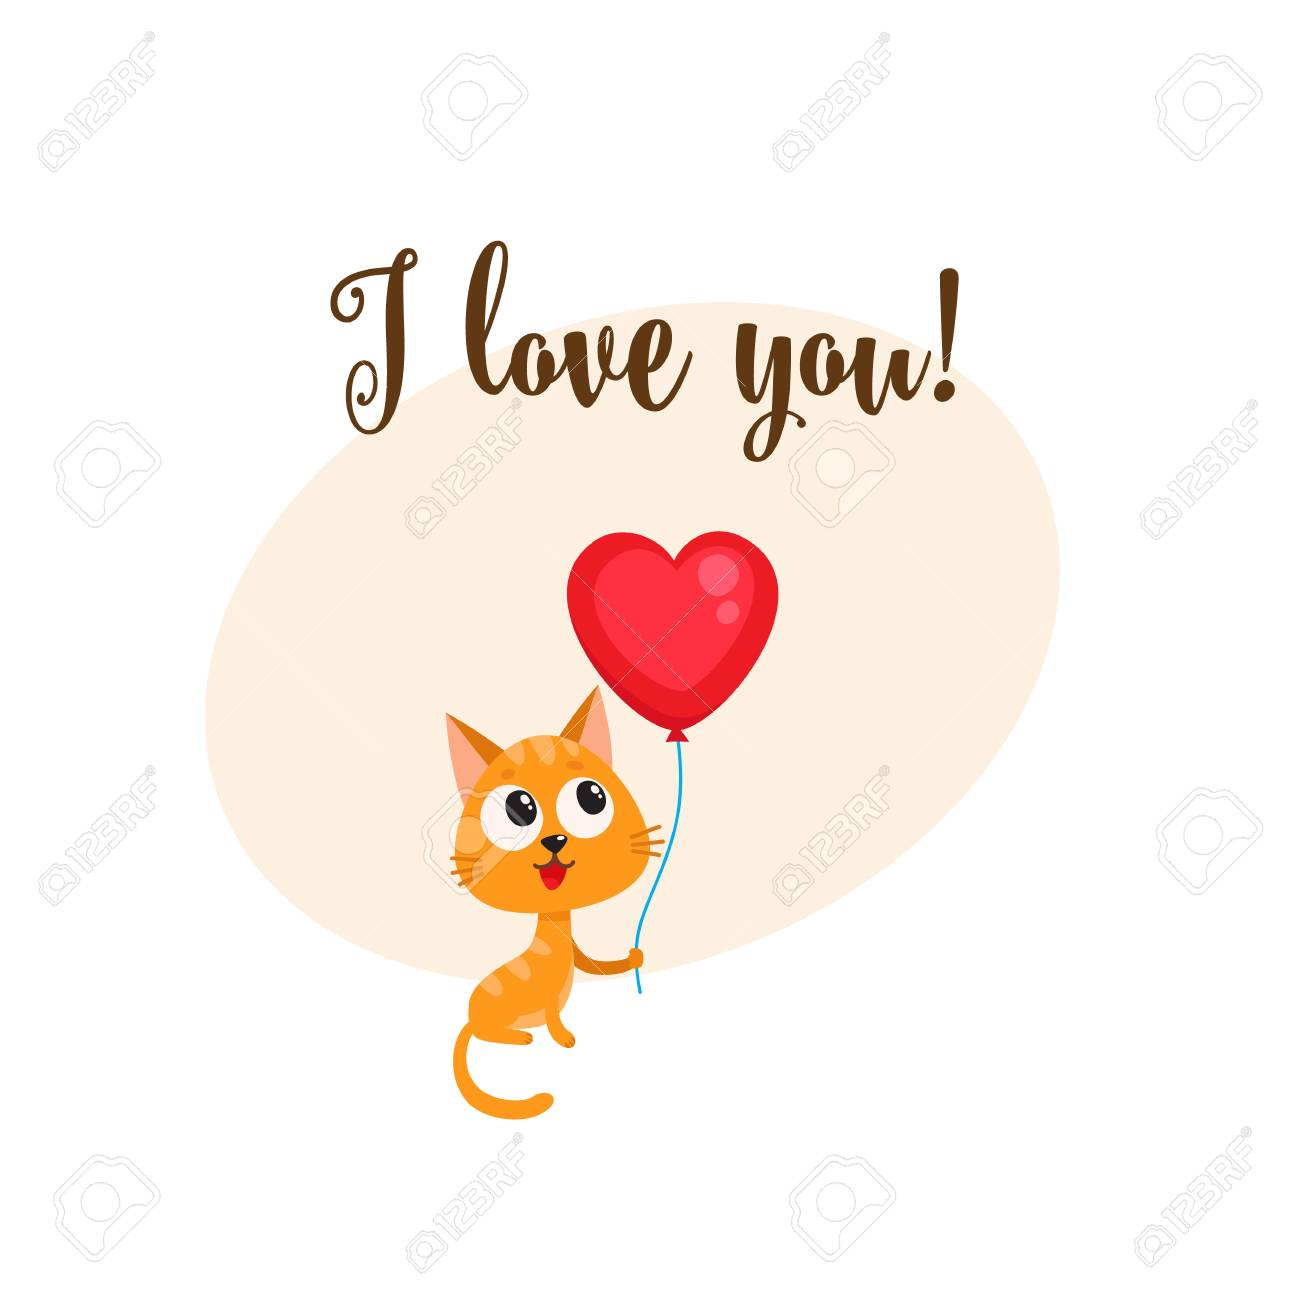 I love you greeting card, banner template with funny cat, kitten holding red heart shaped balloon, cartoon vector illustration. Cute cat holding heart balloon, love postcard, greeting card, banner - 76364771